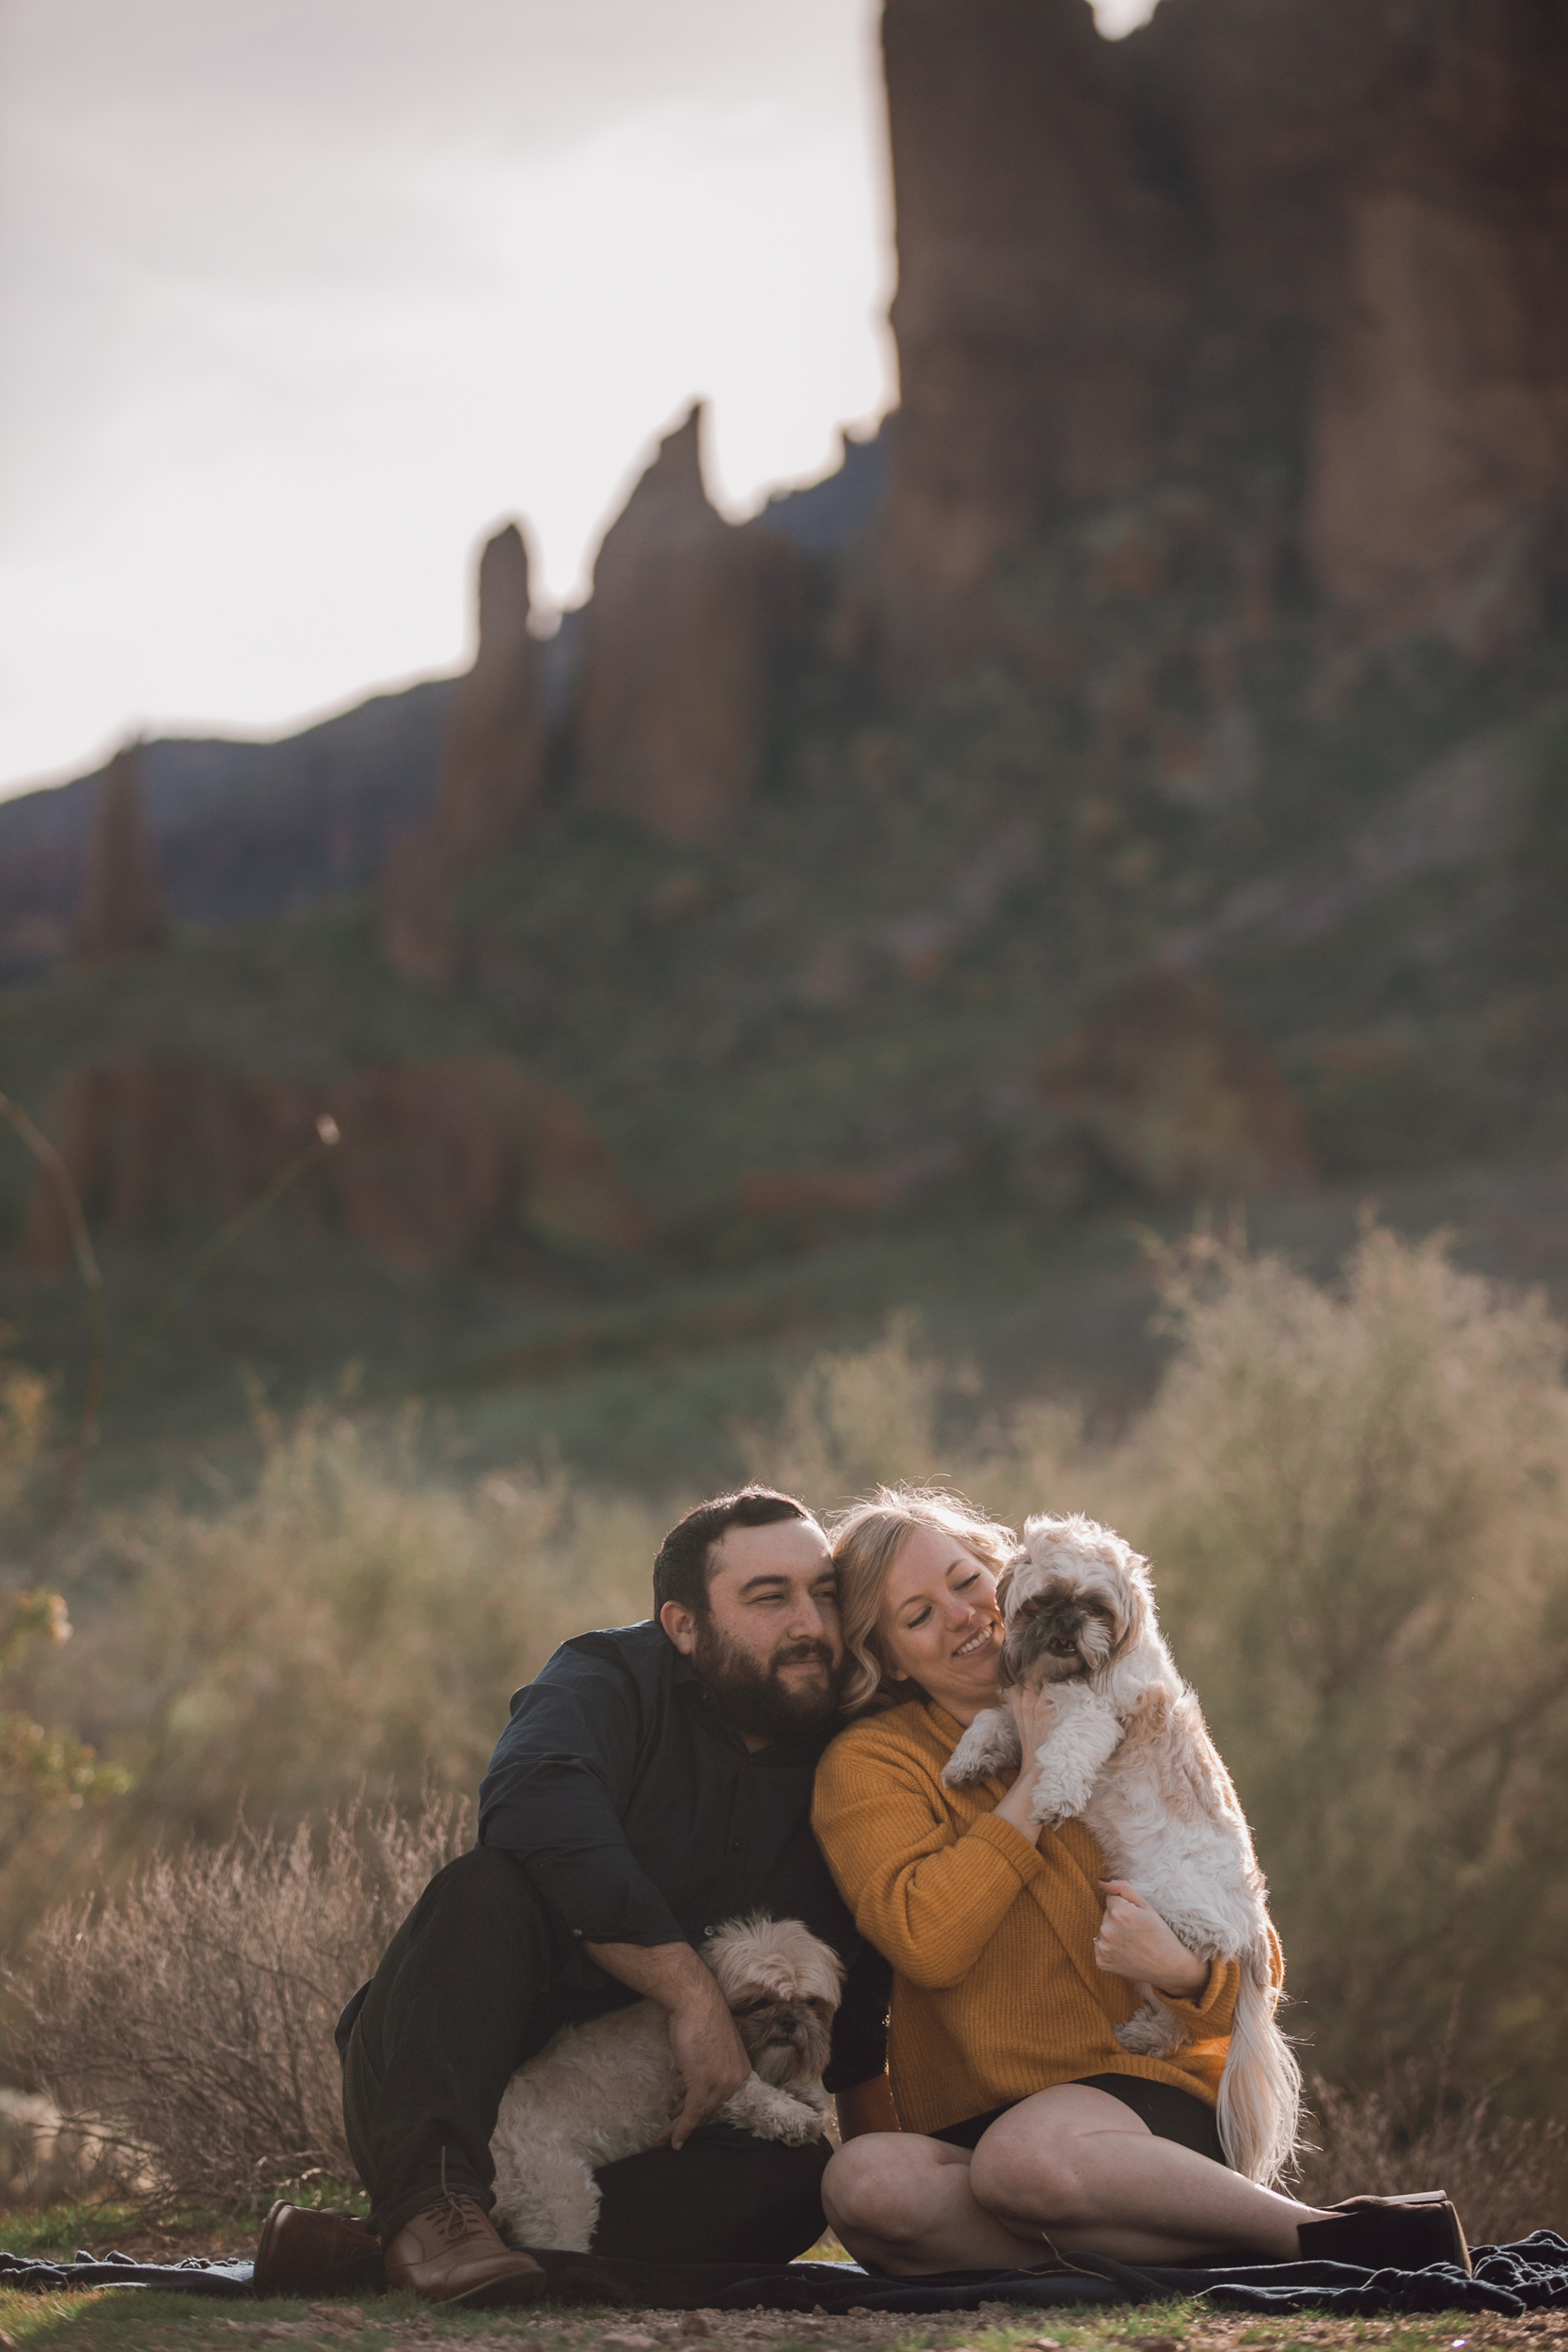 superstition mountain, superstition mountain engagement session, phoenix engagement session, arizona engagement photographer-21.jpg